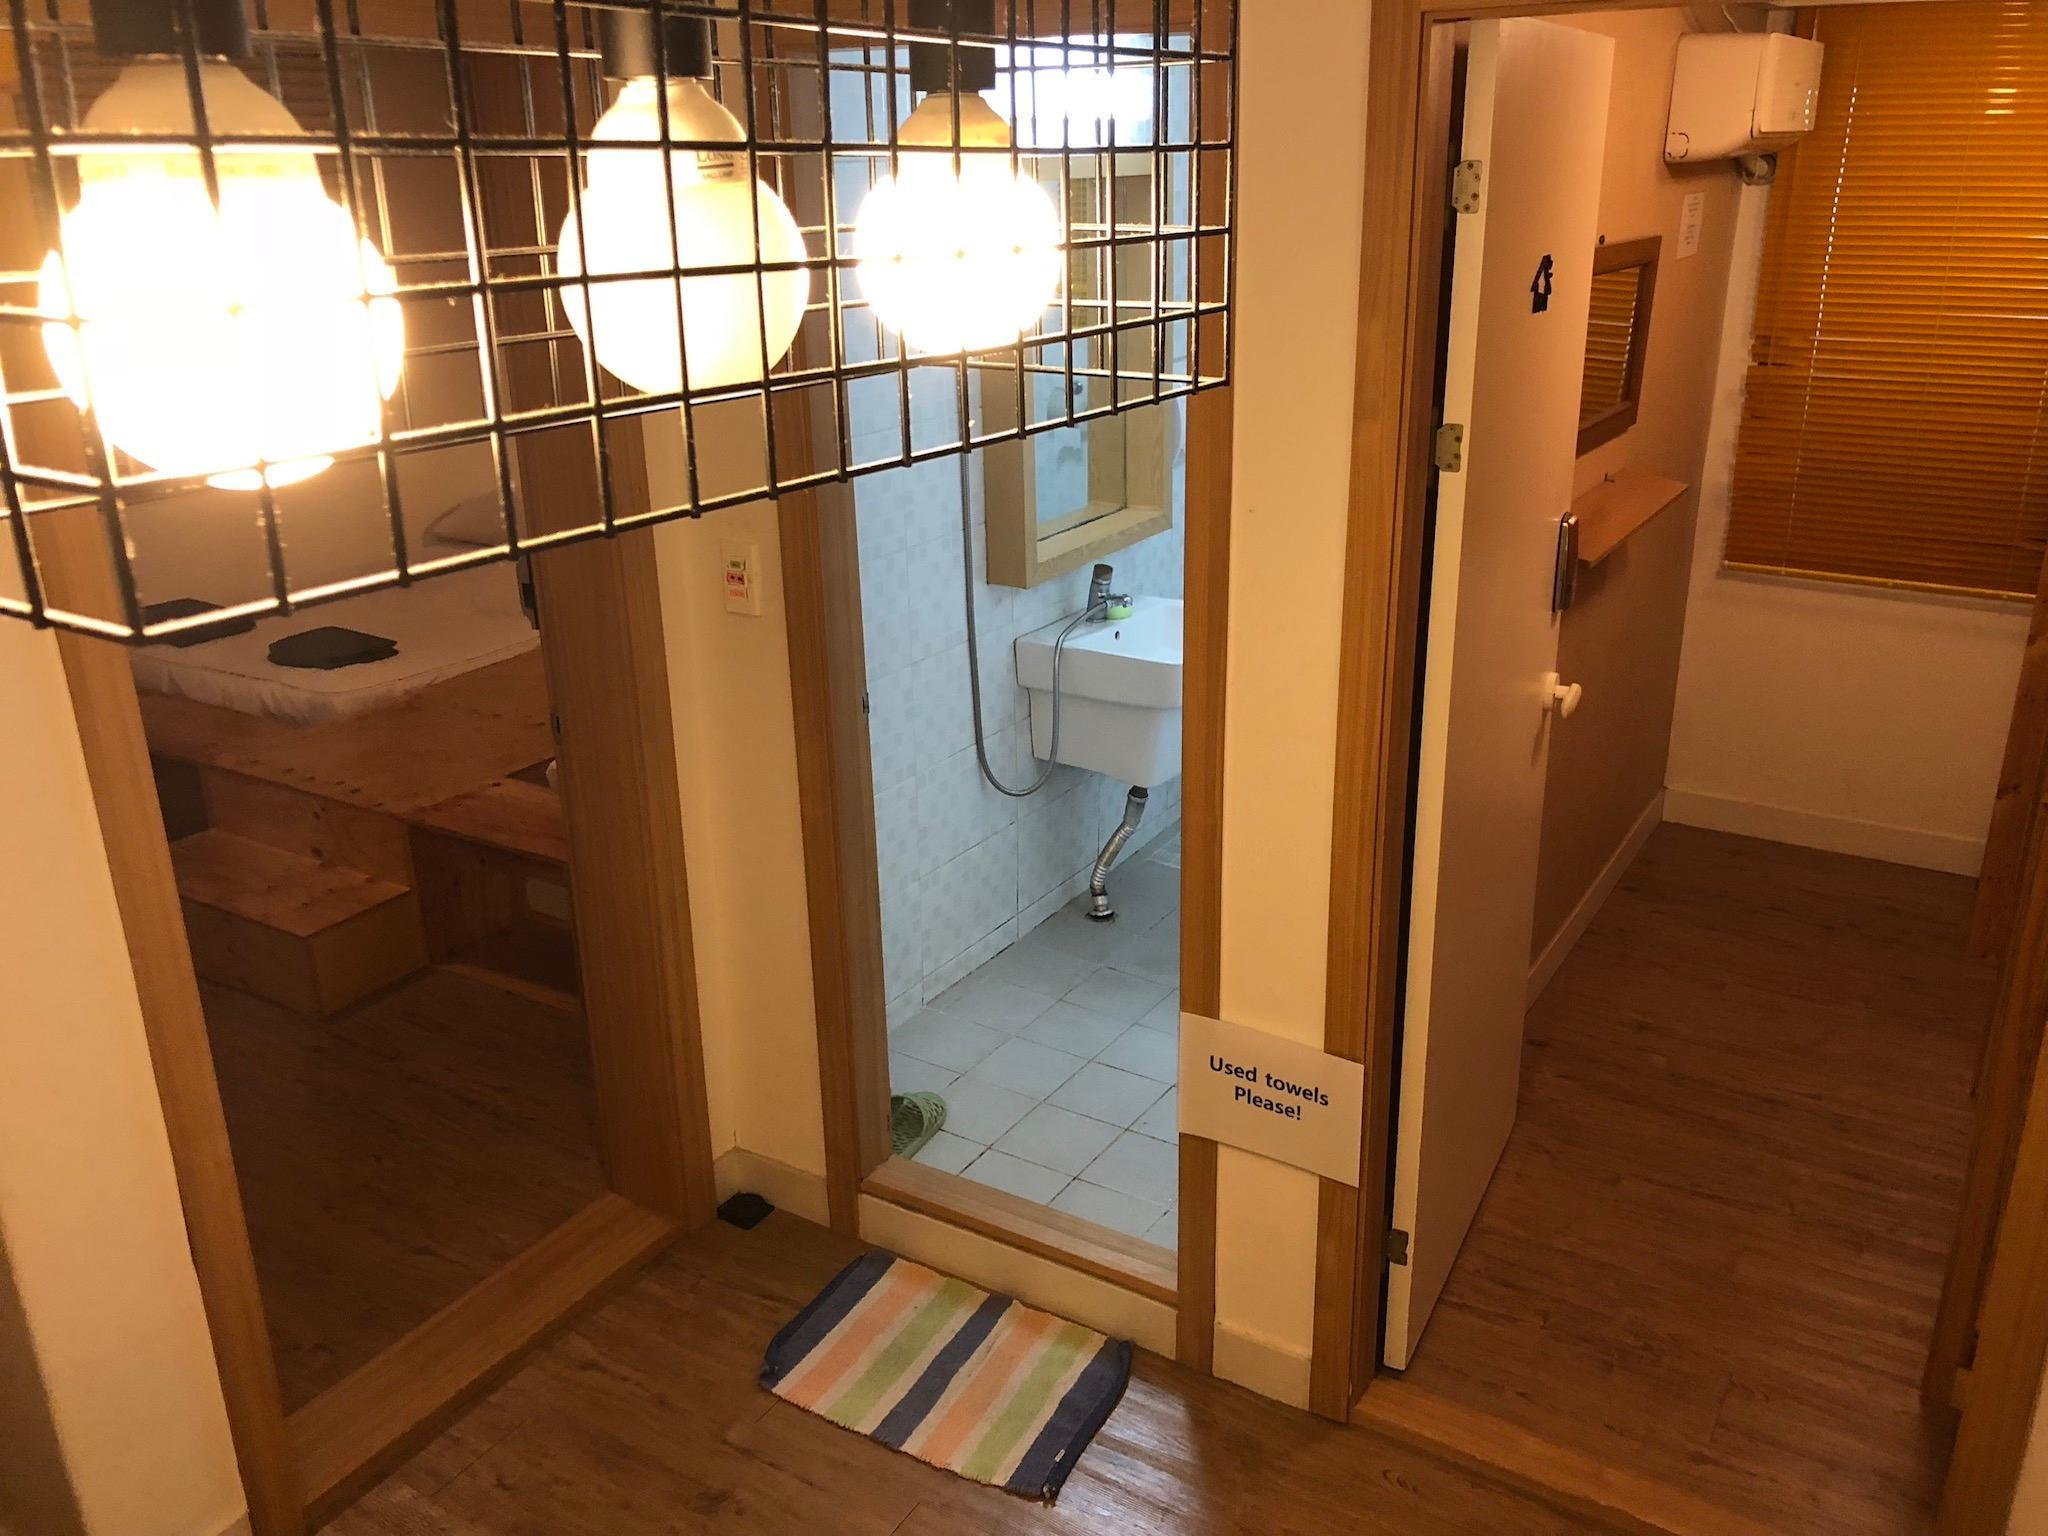 二室公寓 (Apartment 2 rooms)